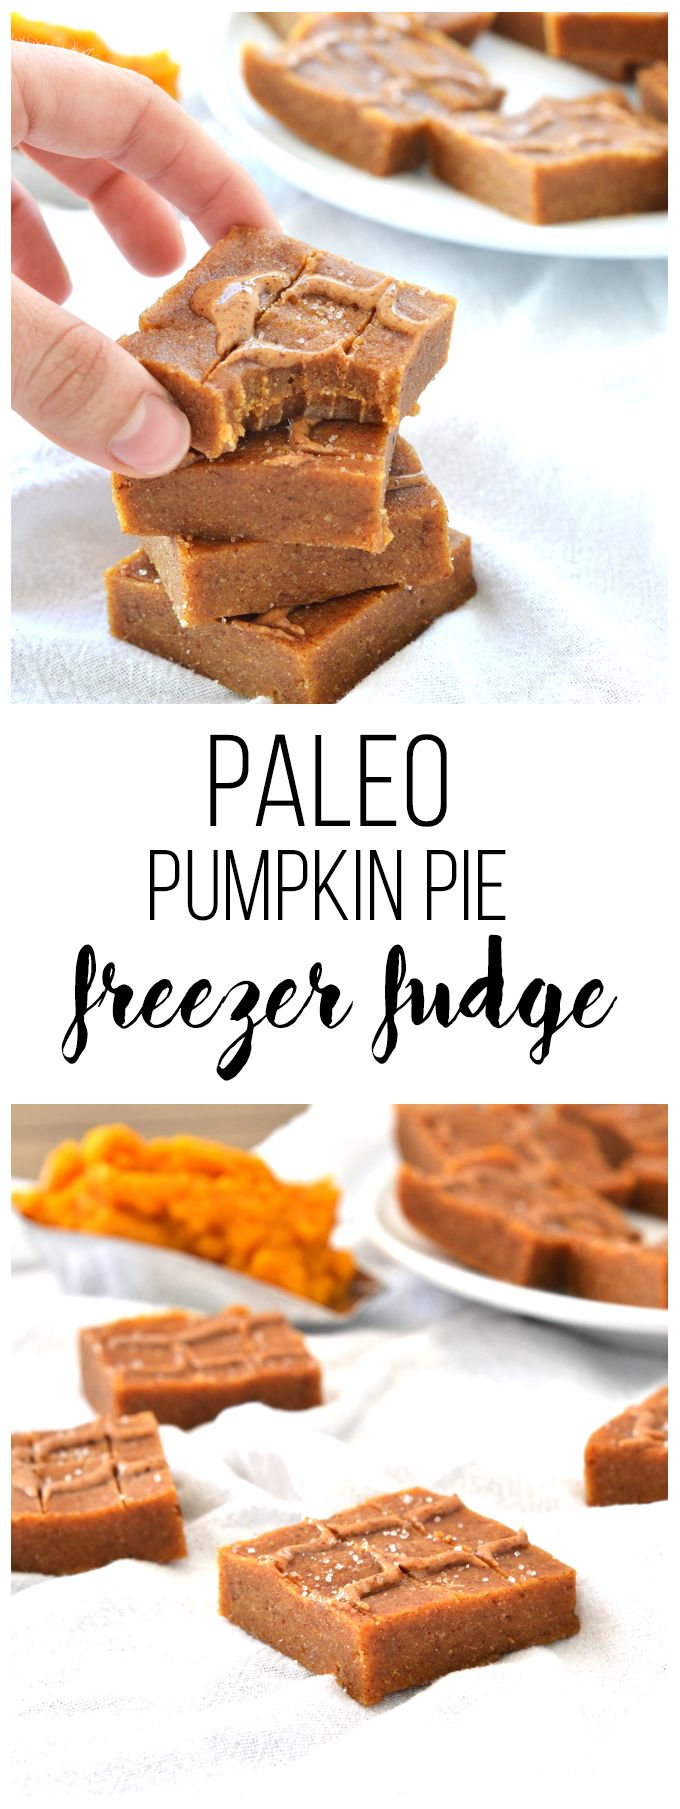 This Paleo Pumpkin Pie Freezer Fudge is the perfect clean & easy fall treat!